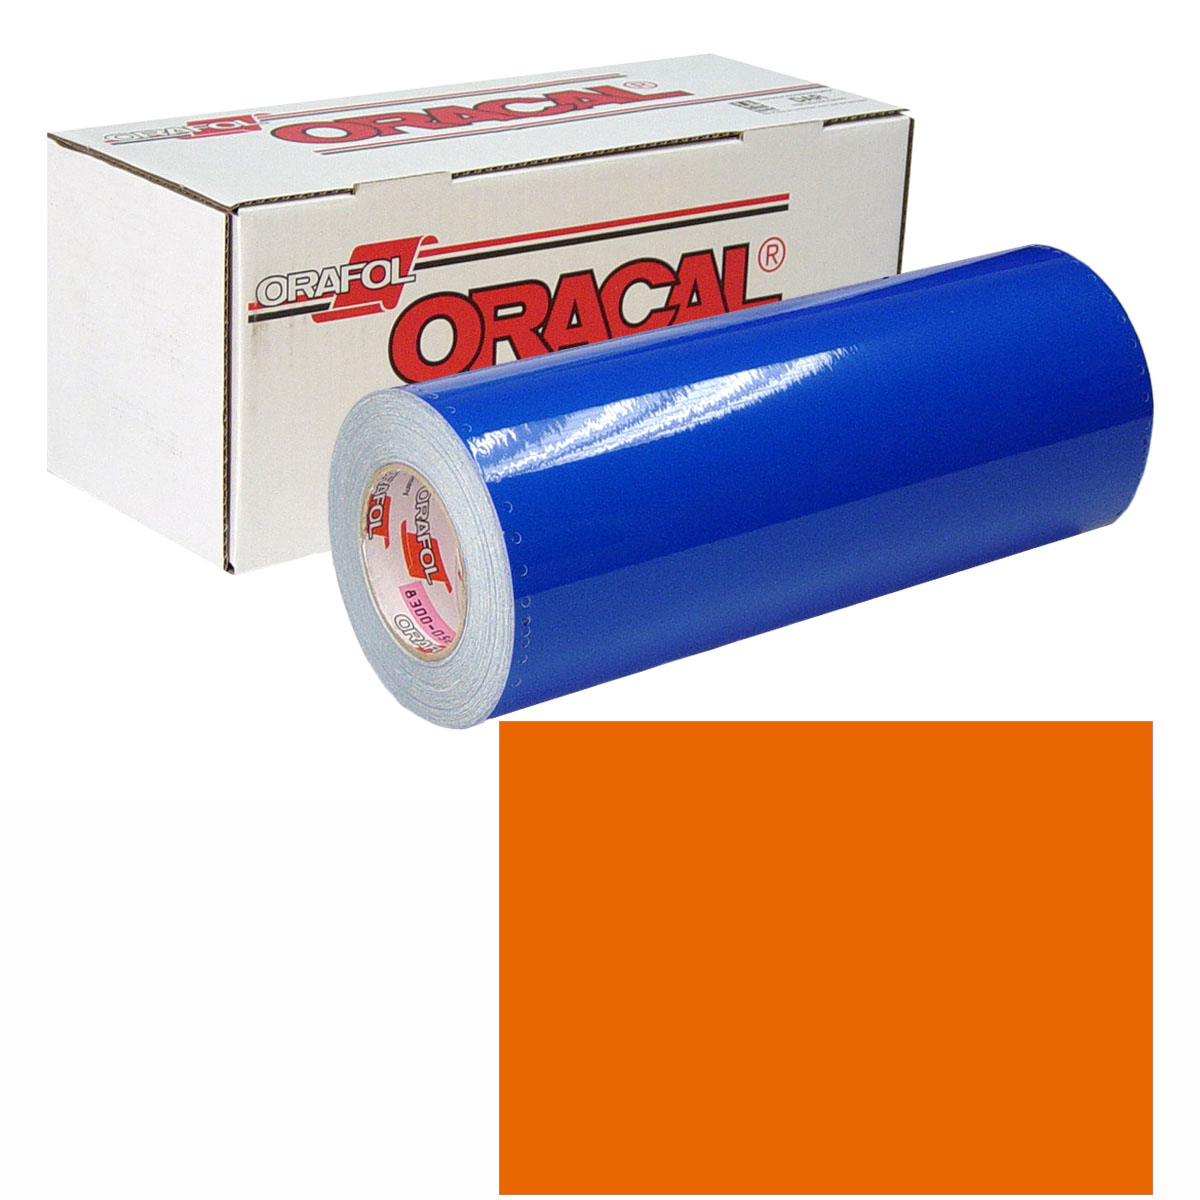 ORACAL 631 30in X 50yd 036 Light Orange